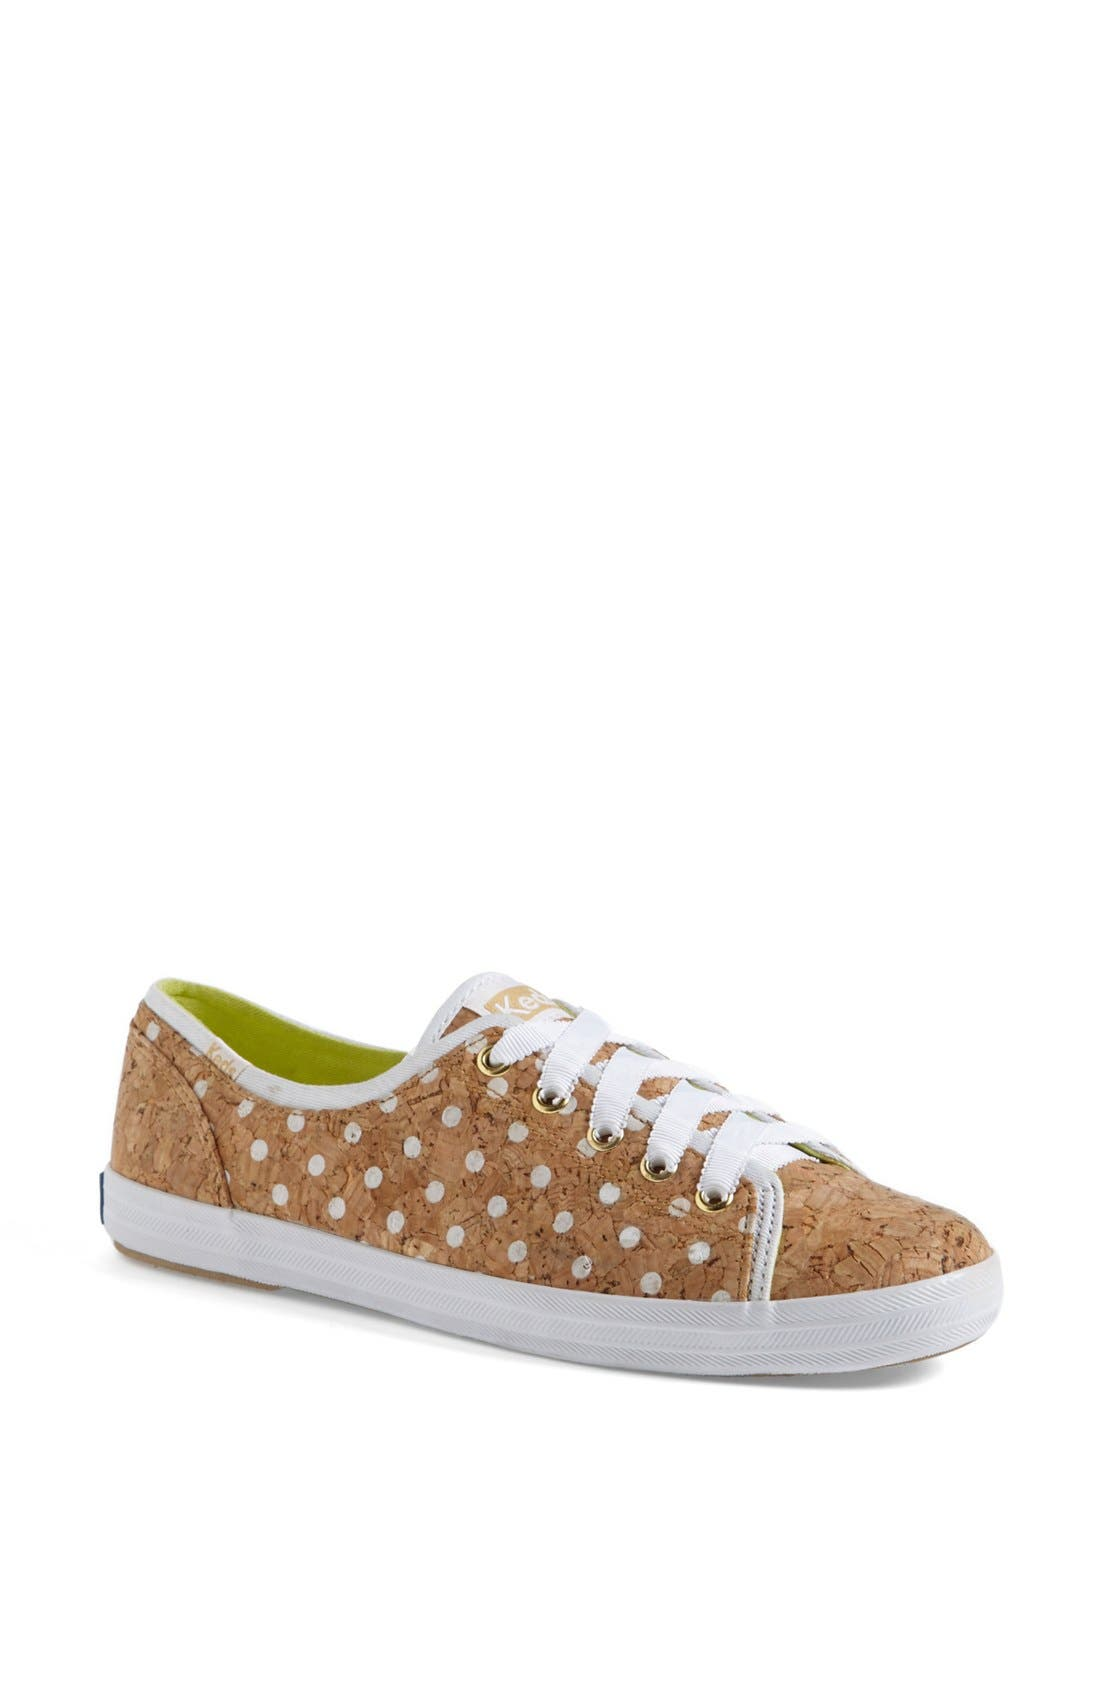 Main Image - Keds® 'Rally' Cork Sneaker (Women)